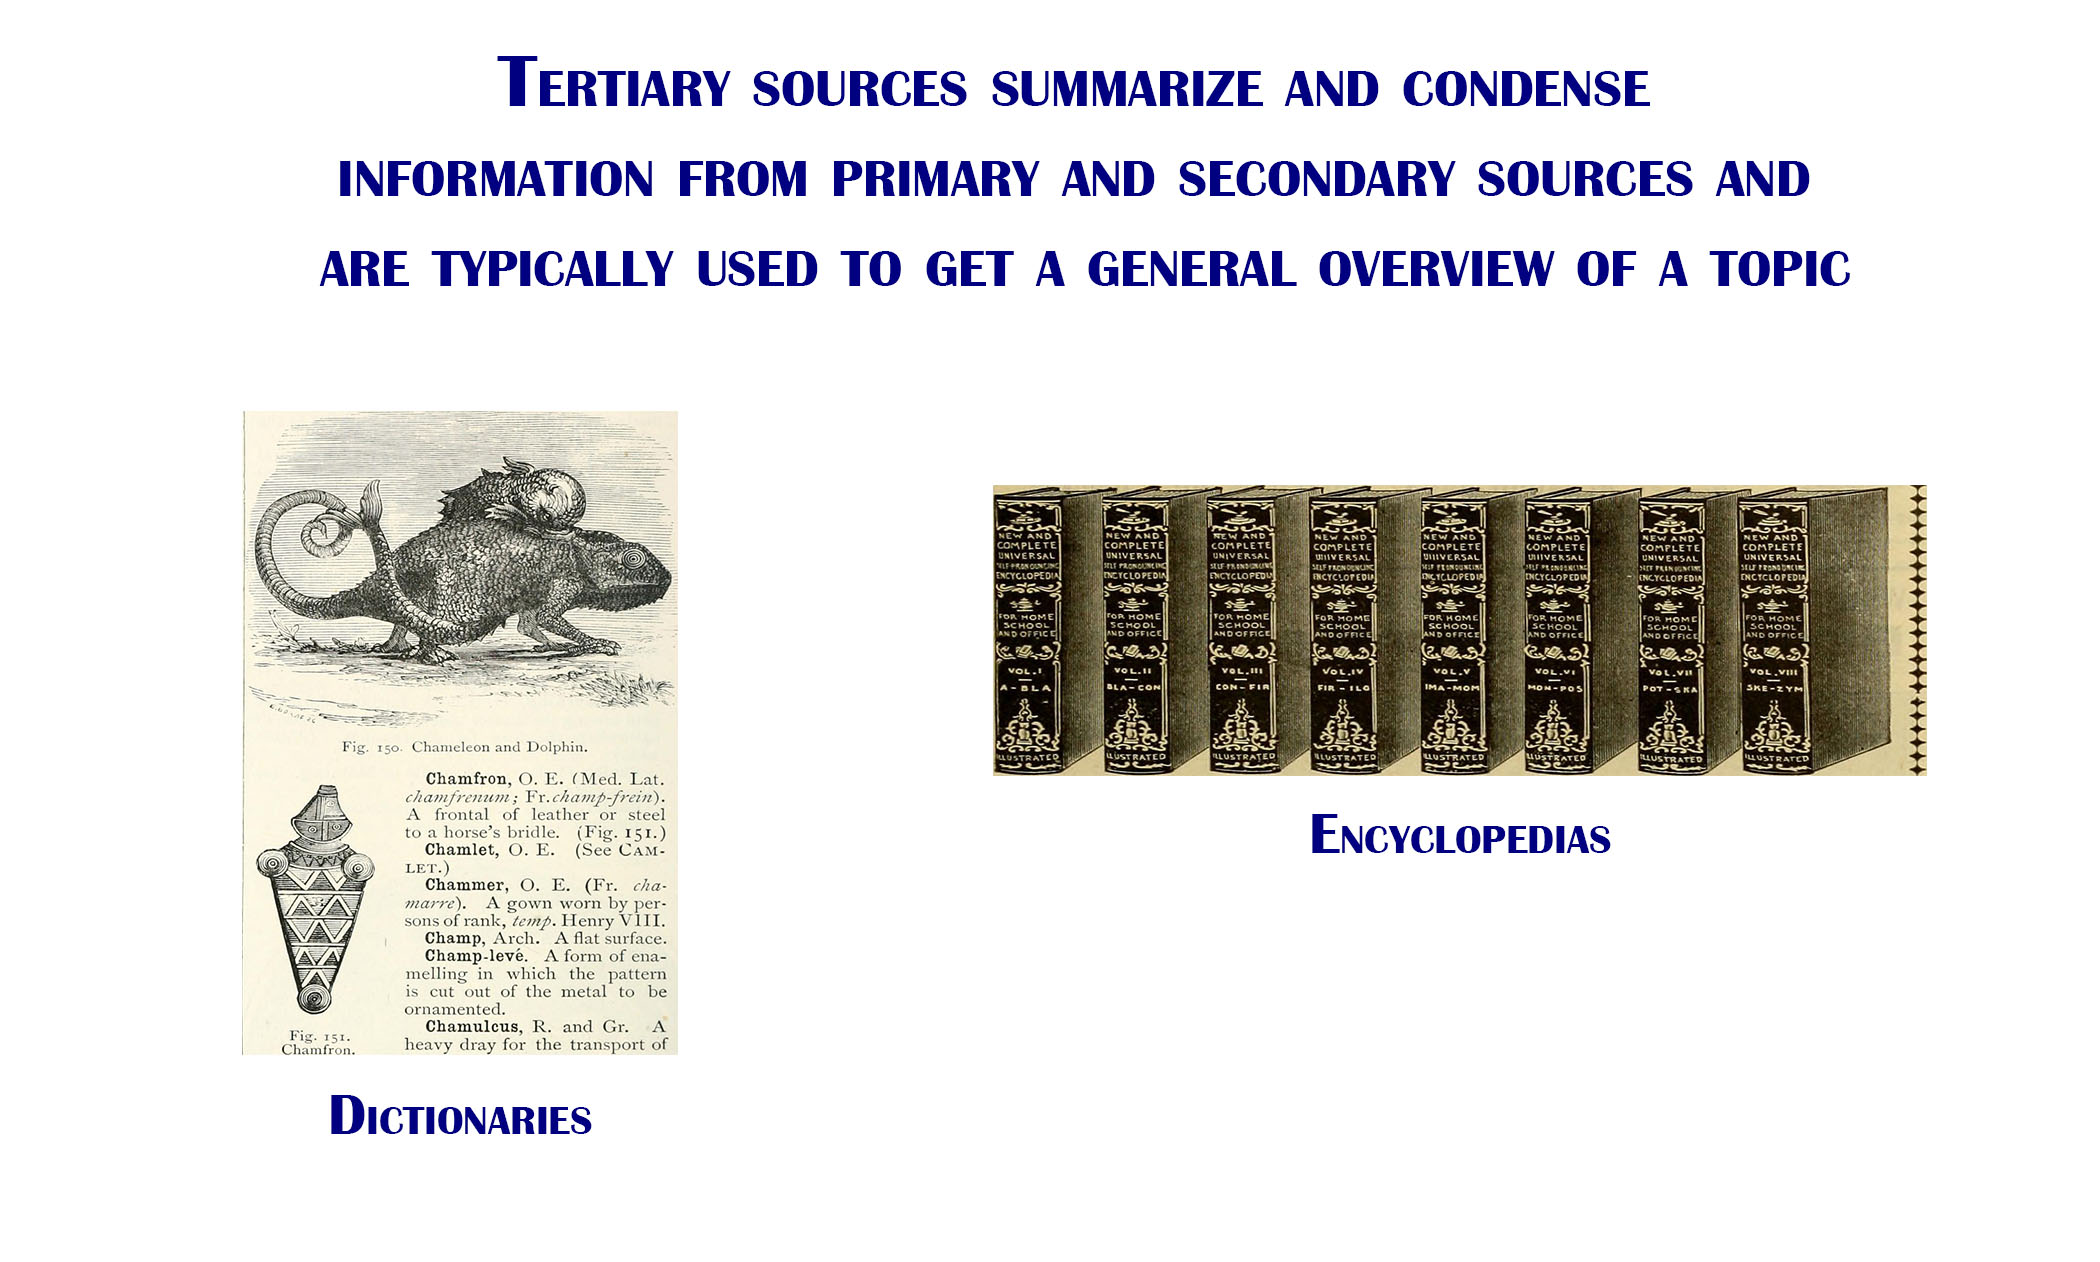 Tertiary sources are sources that summarize and condense information from primary and secondary sources, and are typically used to get a general overview of a topic